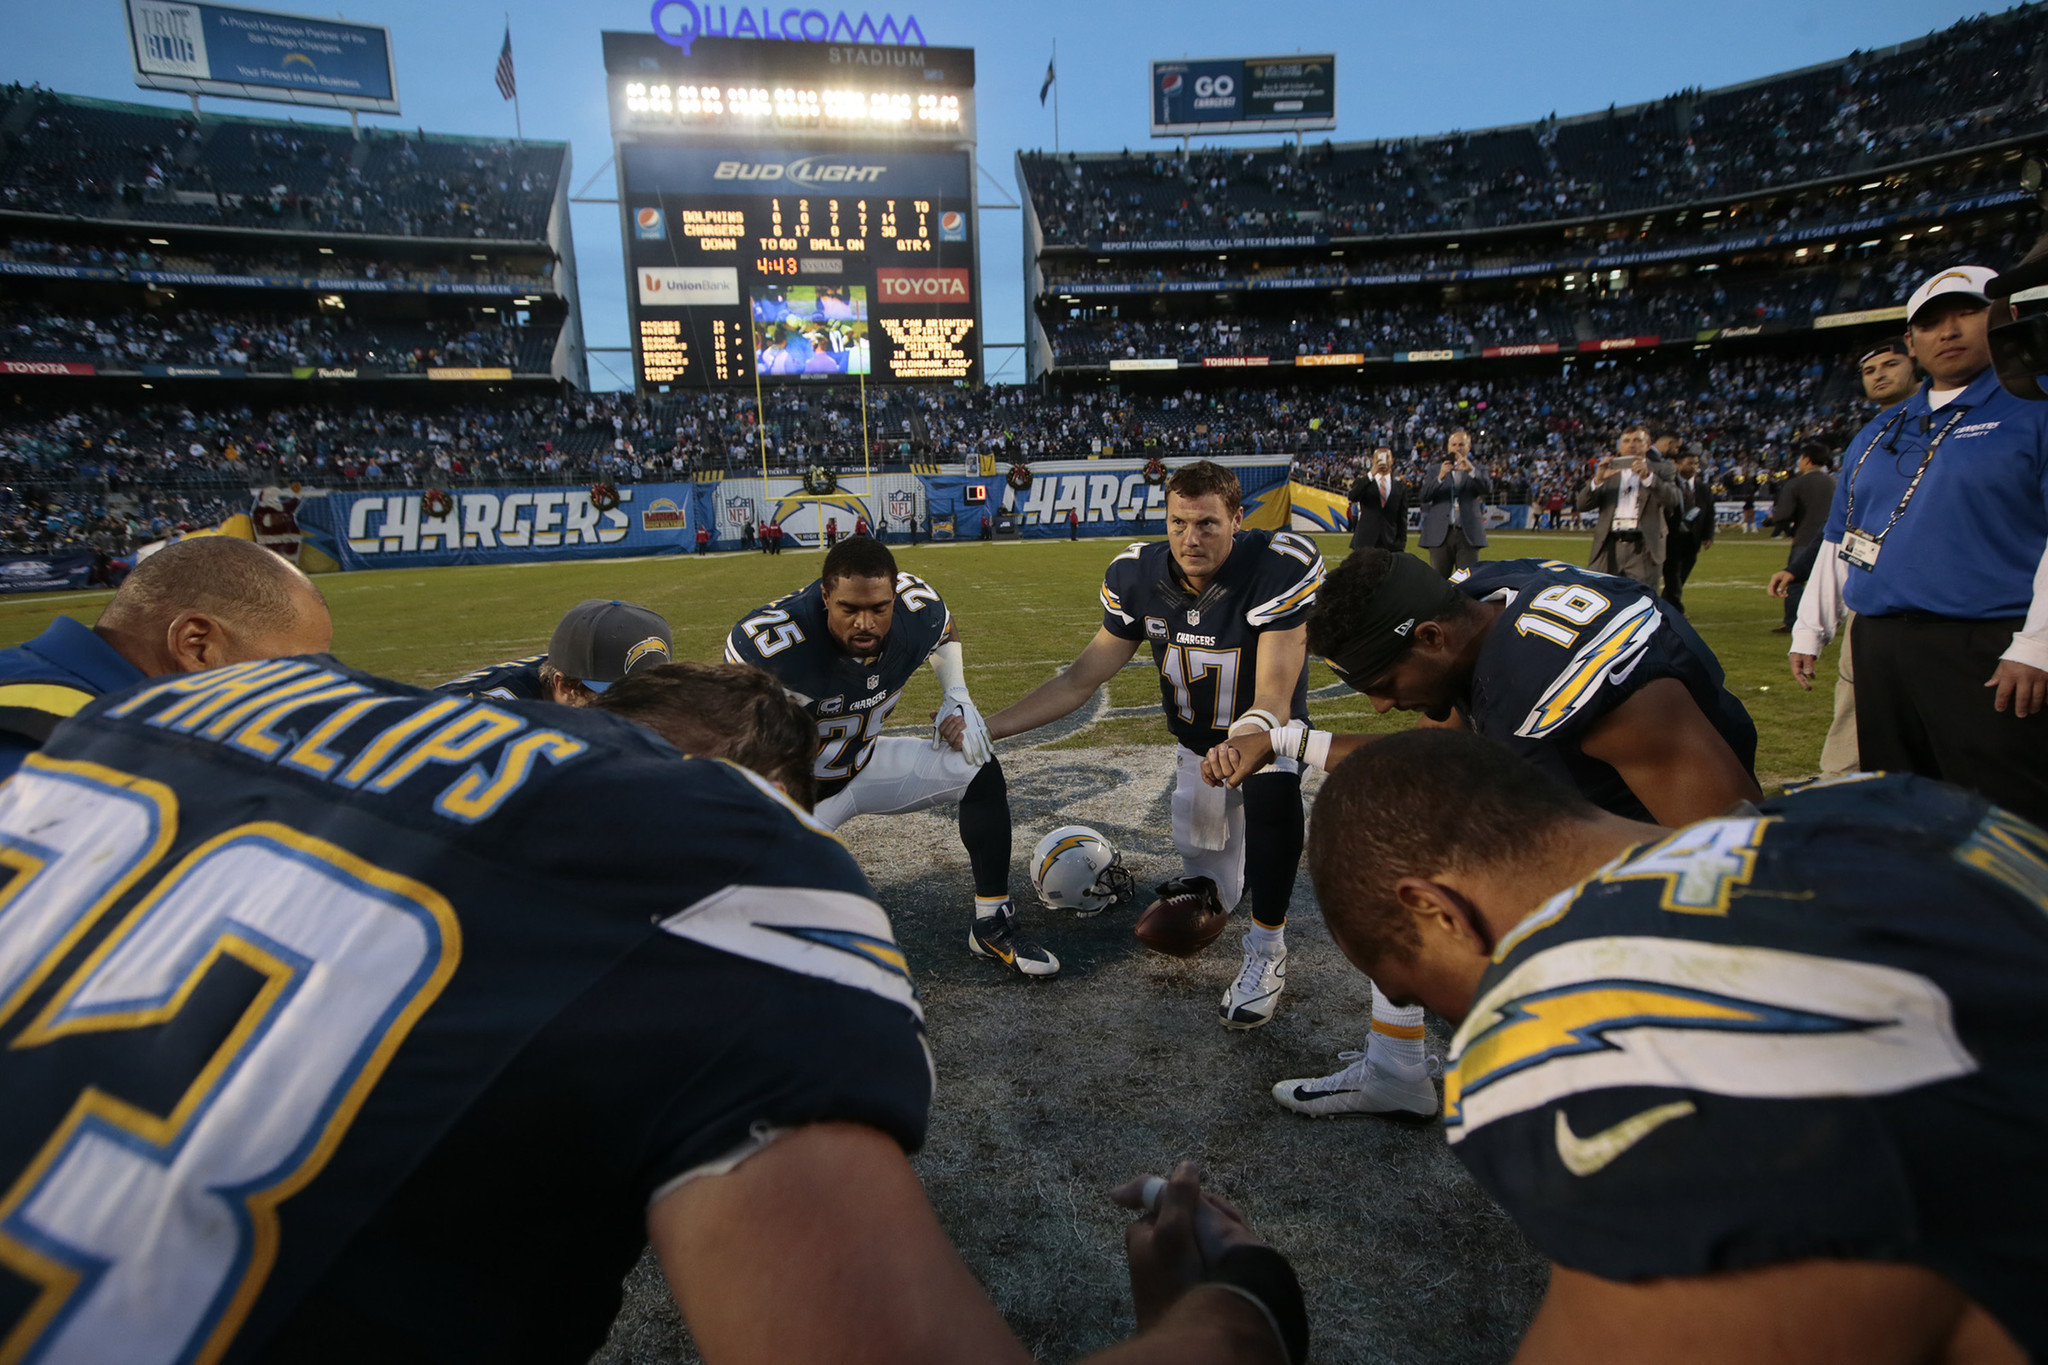 Chargers final home game?